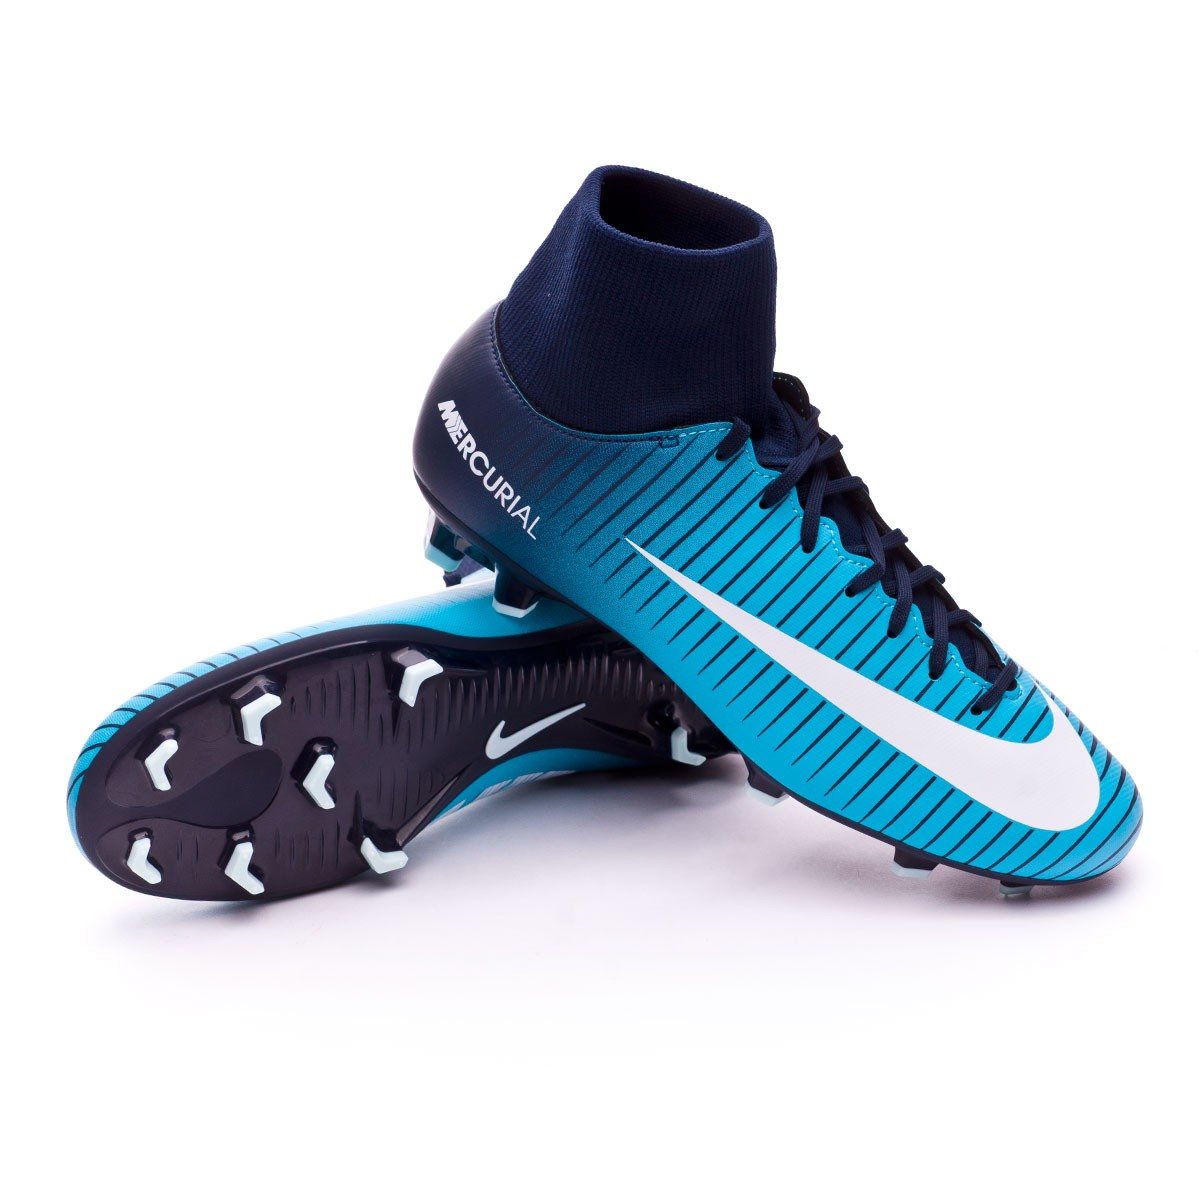 ... Bota Mercurial Victory VI DF FG Obsidian-White-Gamma blue. Video d3f38566a0